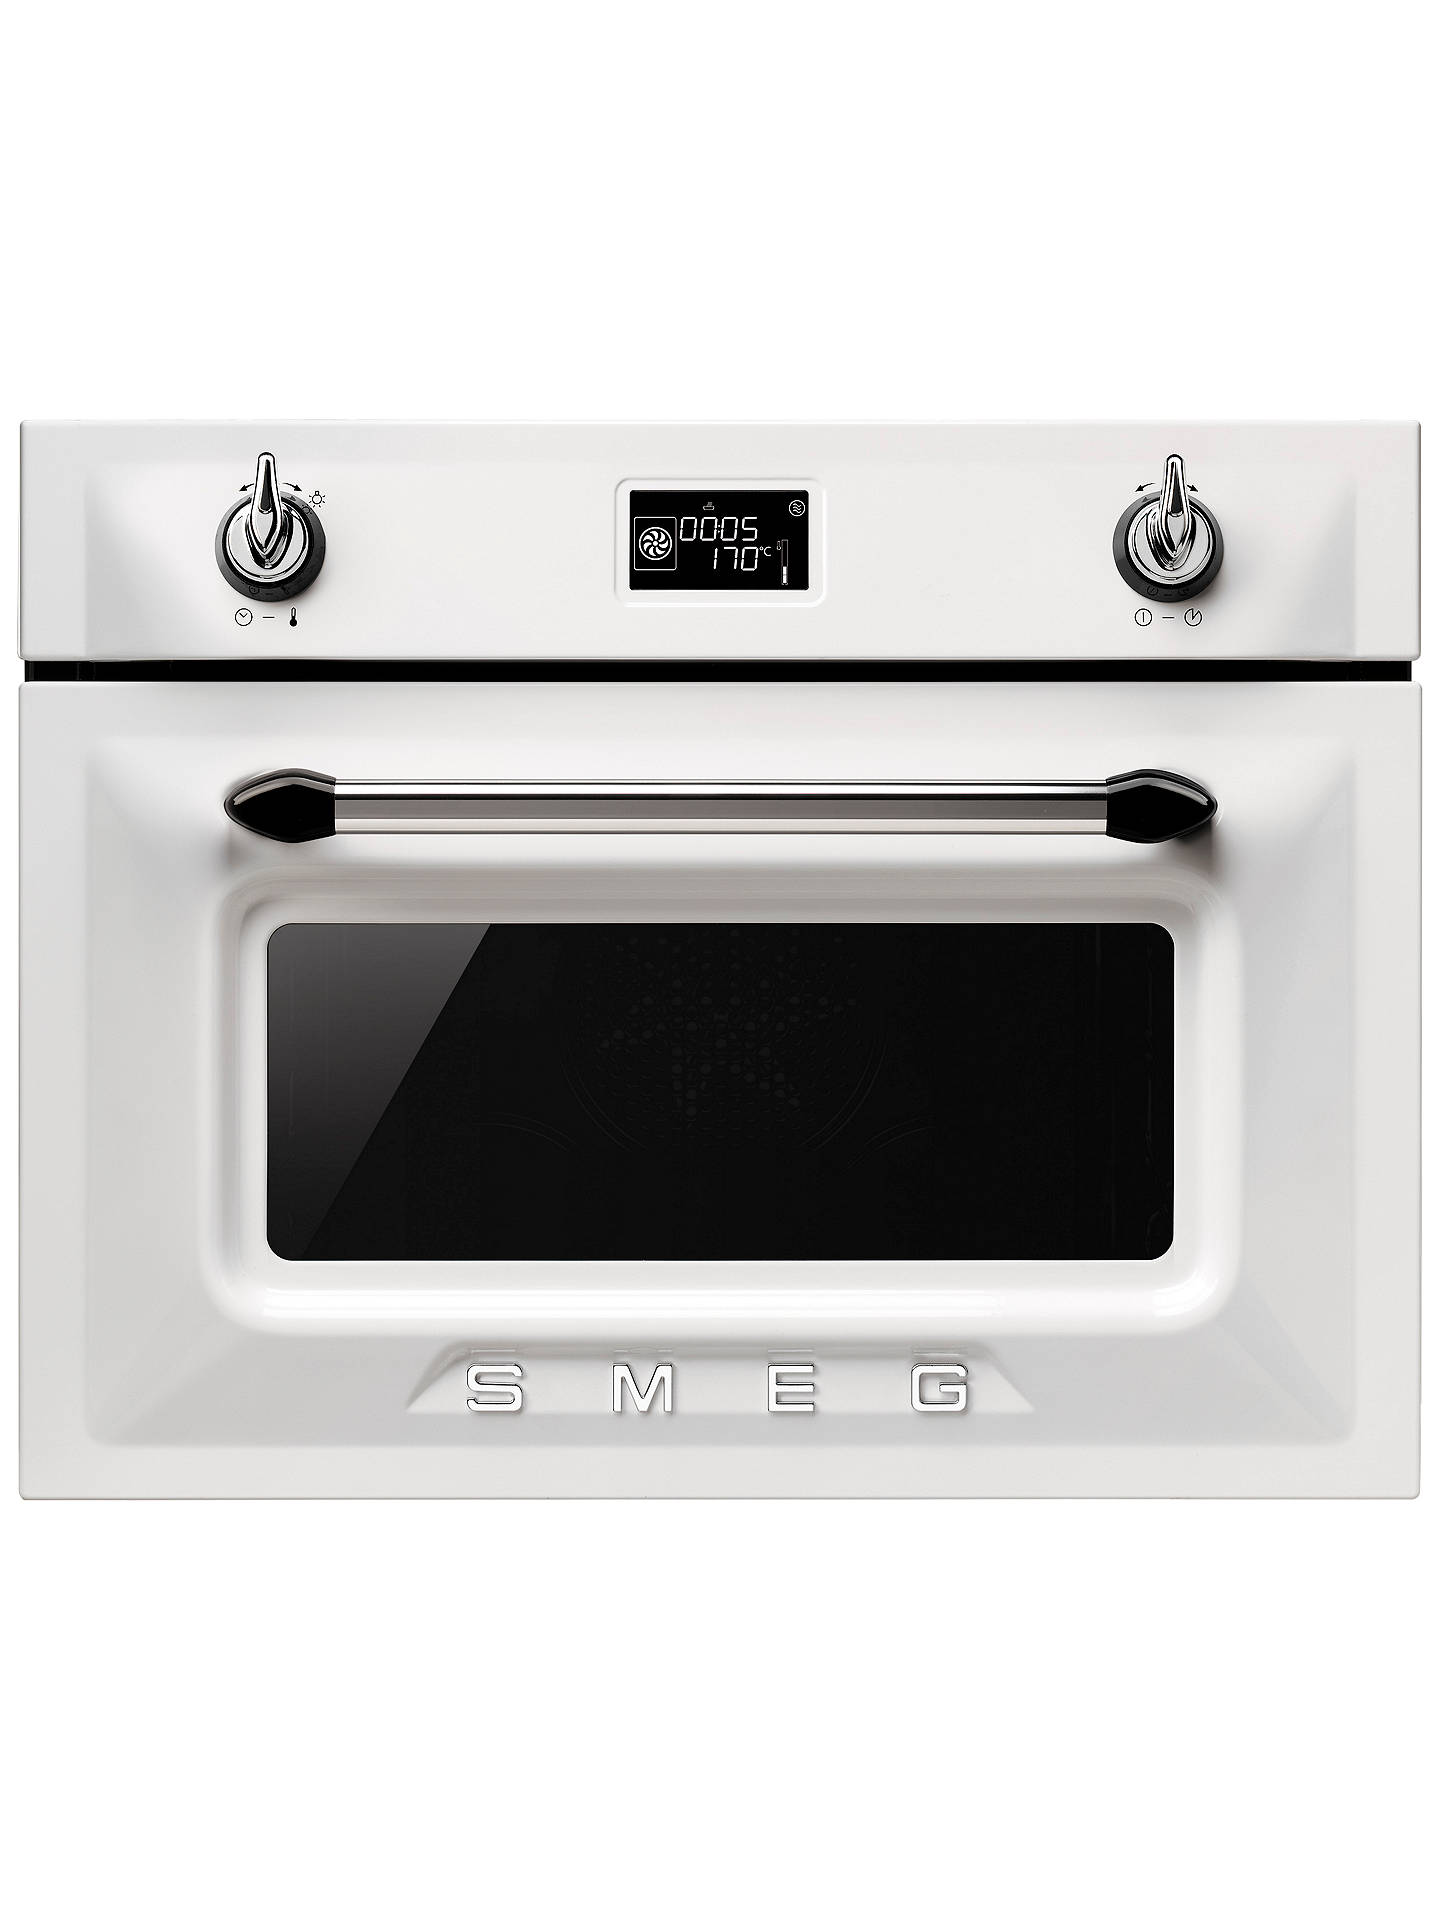 Smeg SF4920MCB Victoria Integrated Compact Combi Microwave Oven, White at John Lewis & Partners